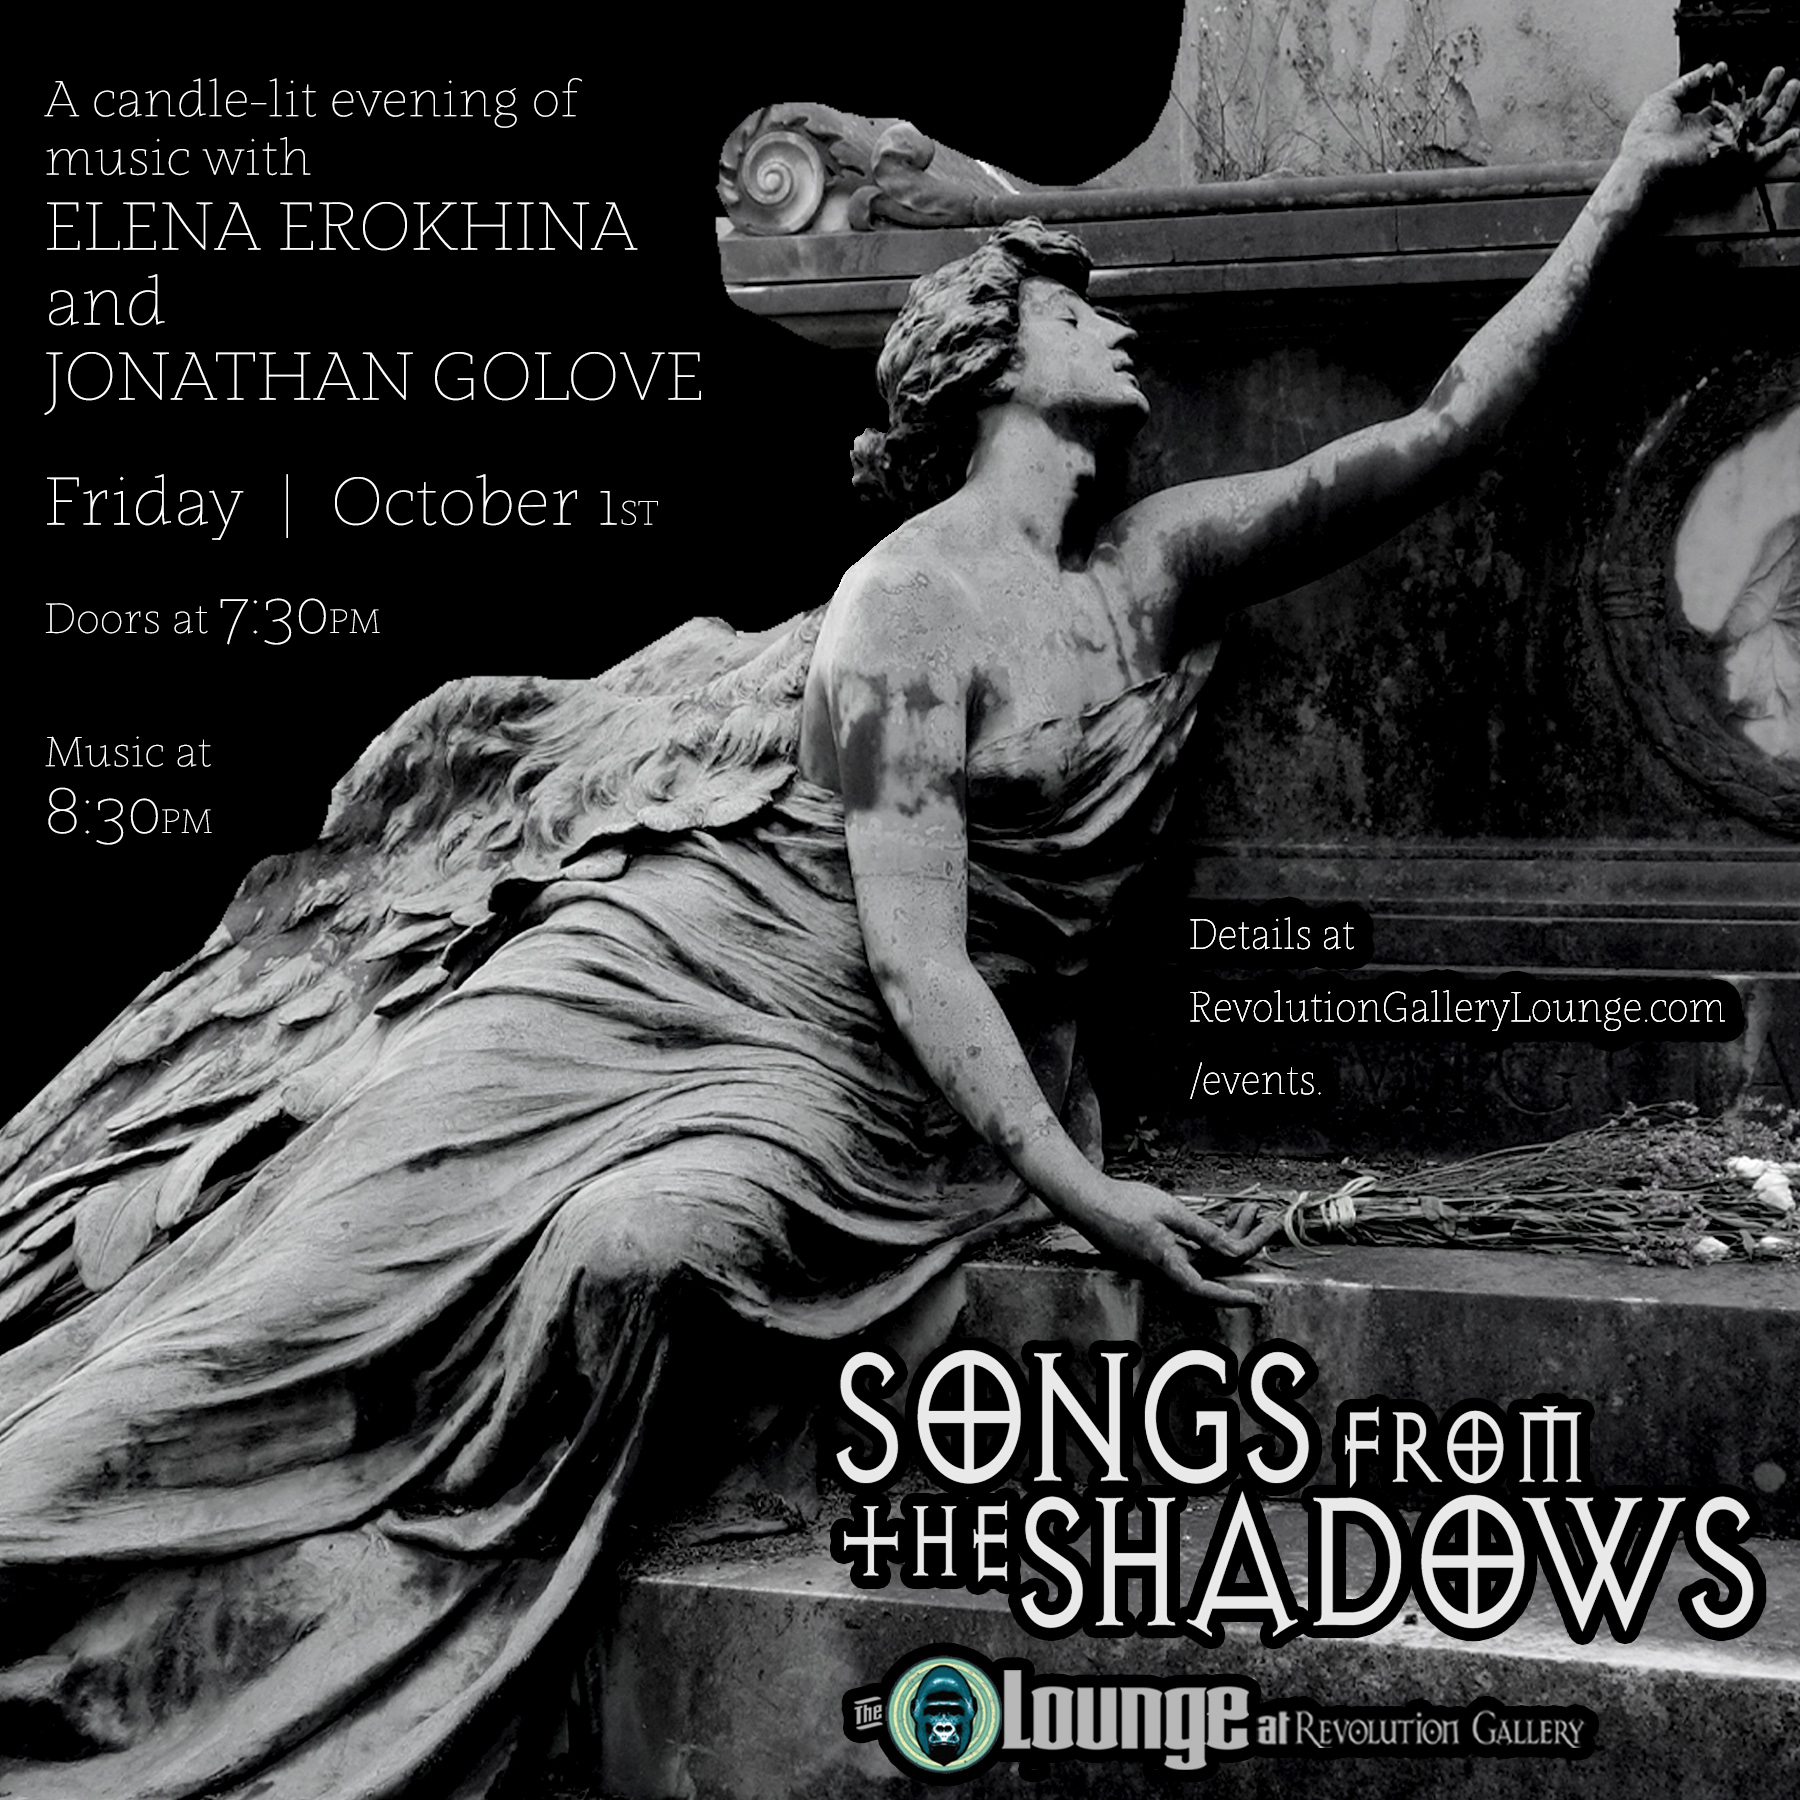 RGLSONGS_FROM_THE_SHADOWS_OCT2nd_IG copy